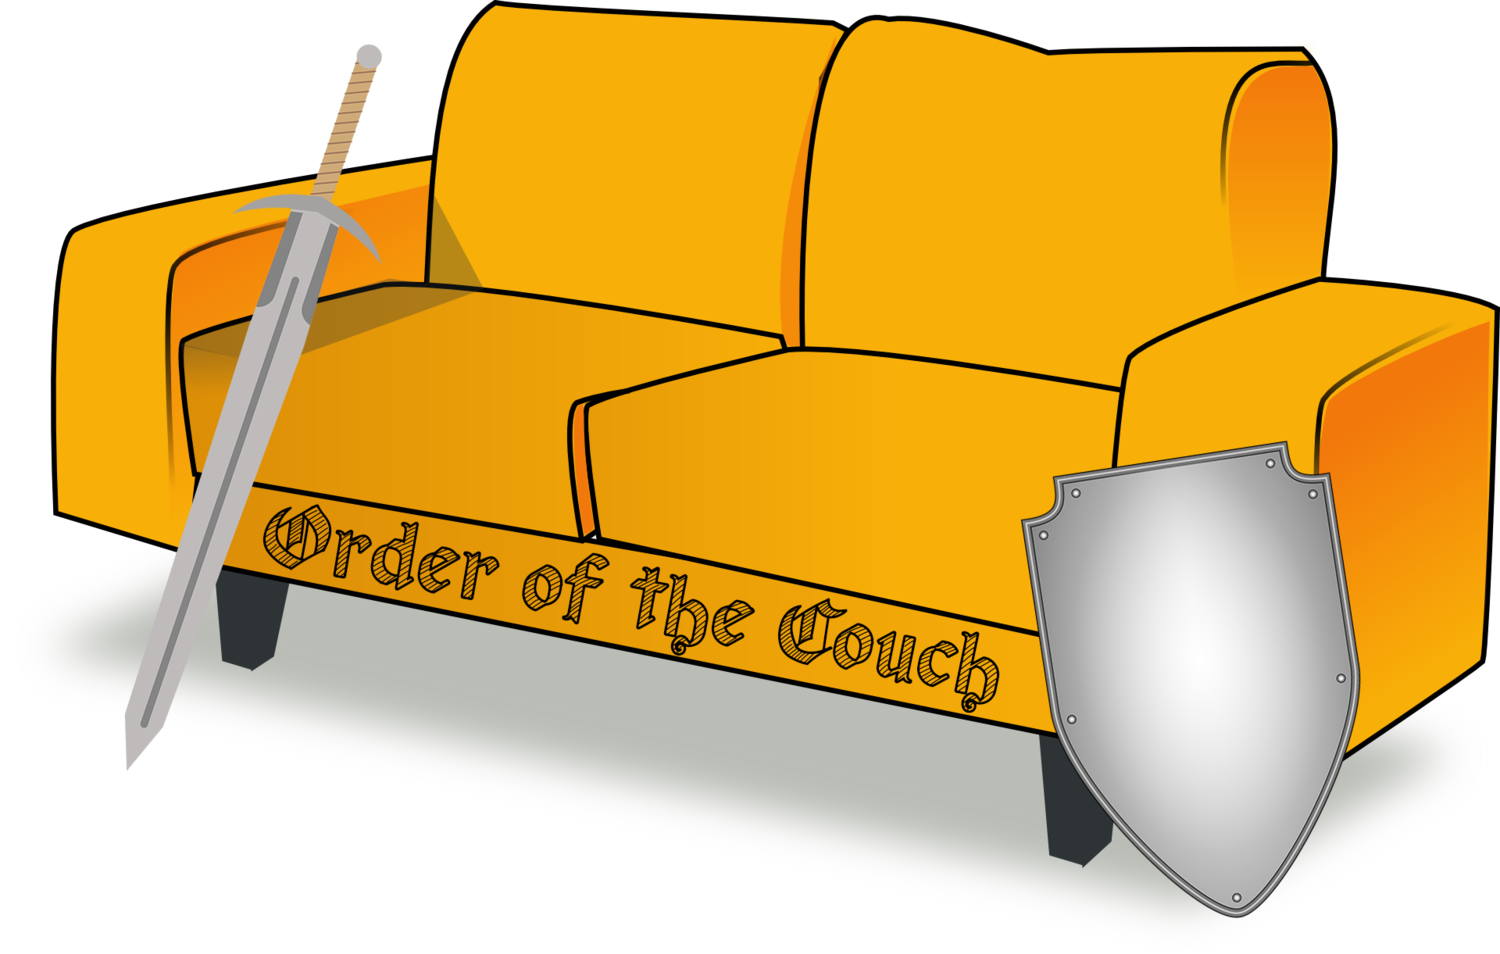 Day one park d. Couch clipart single person